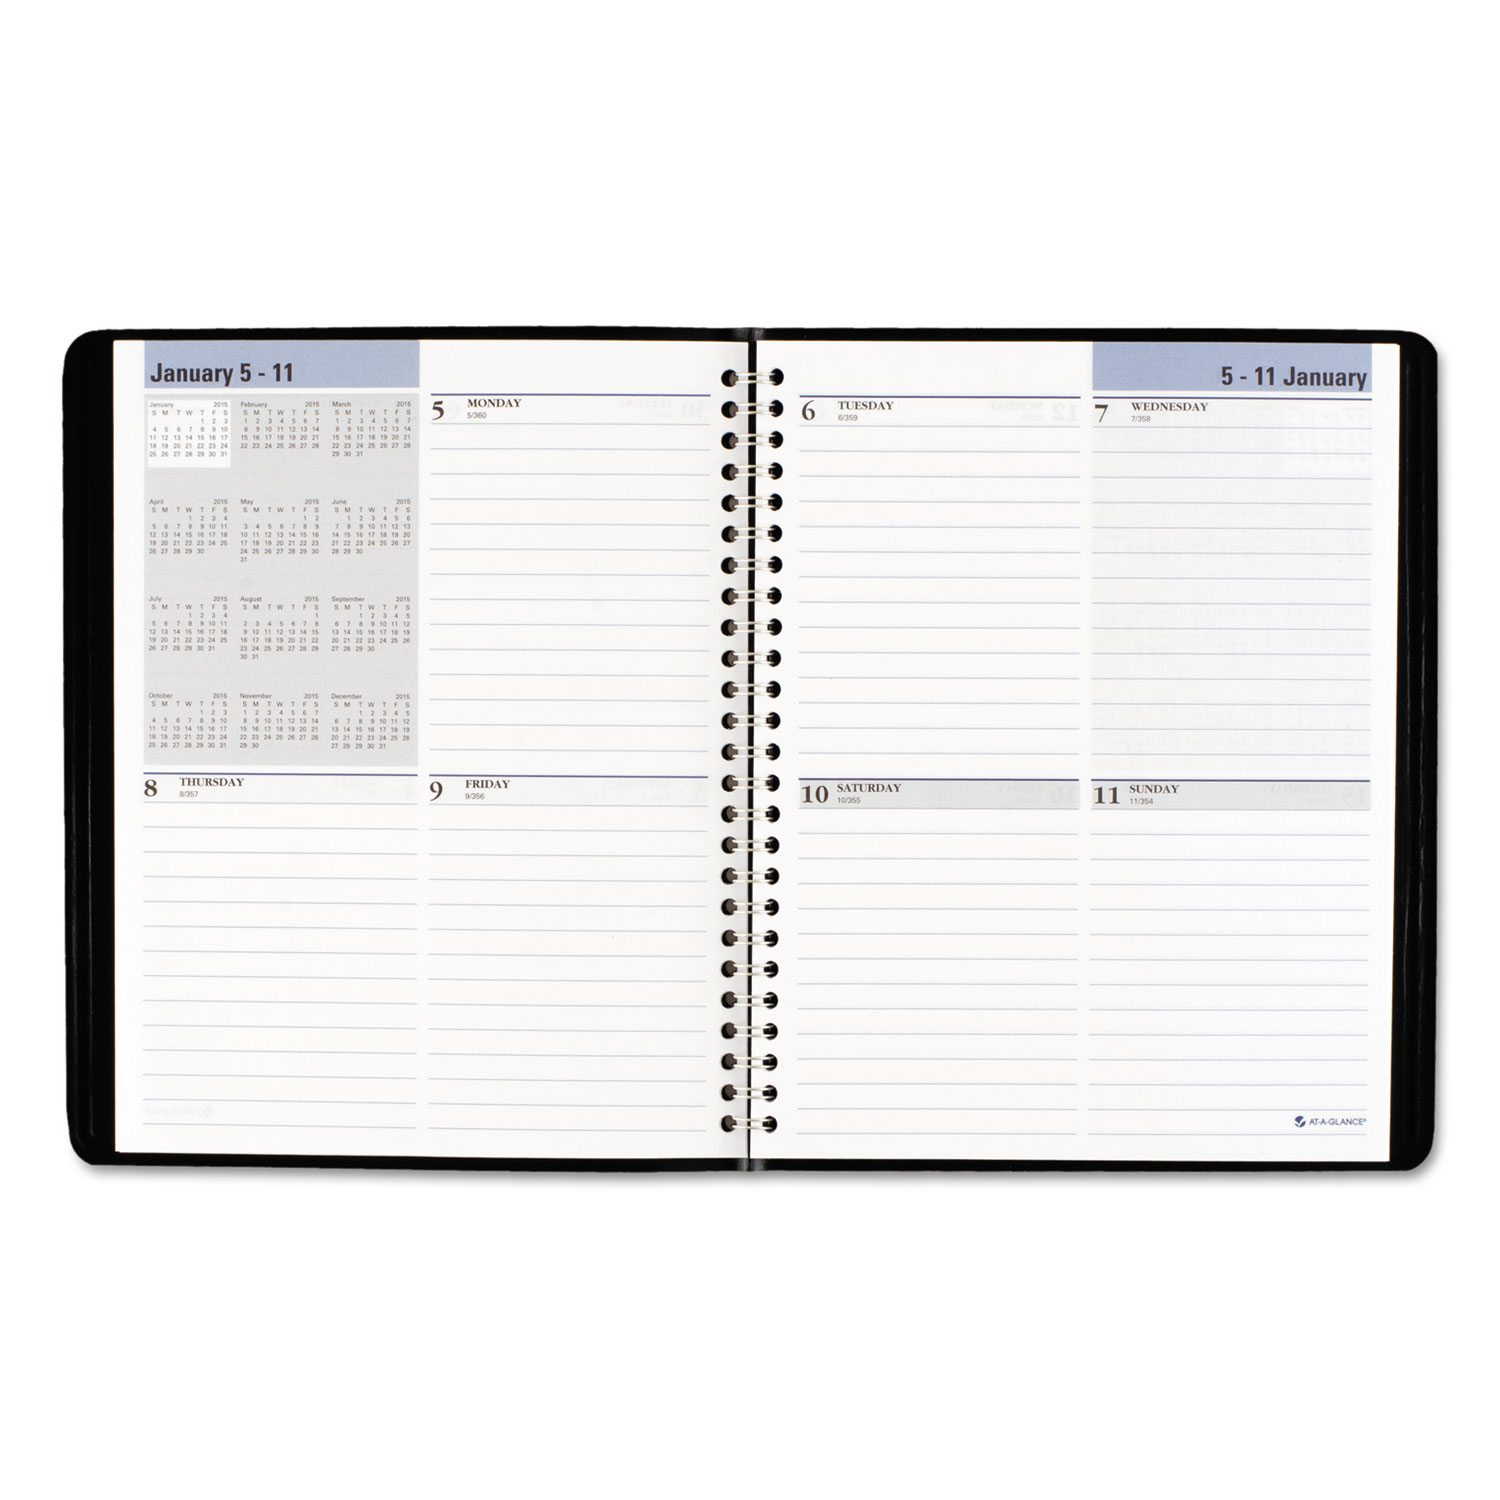 open schedule weekly appointment book by at a glance dayminder